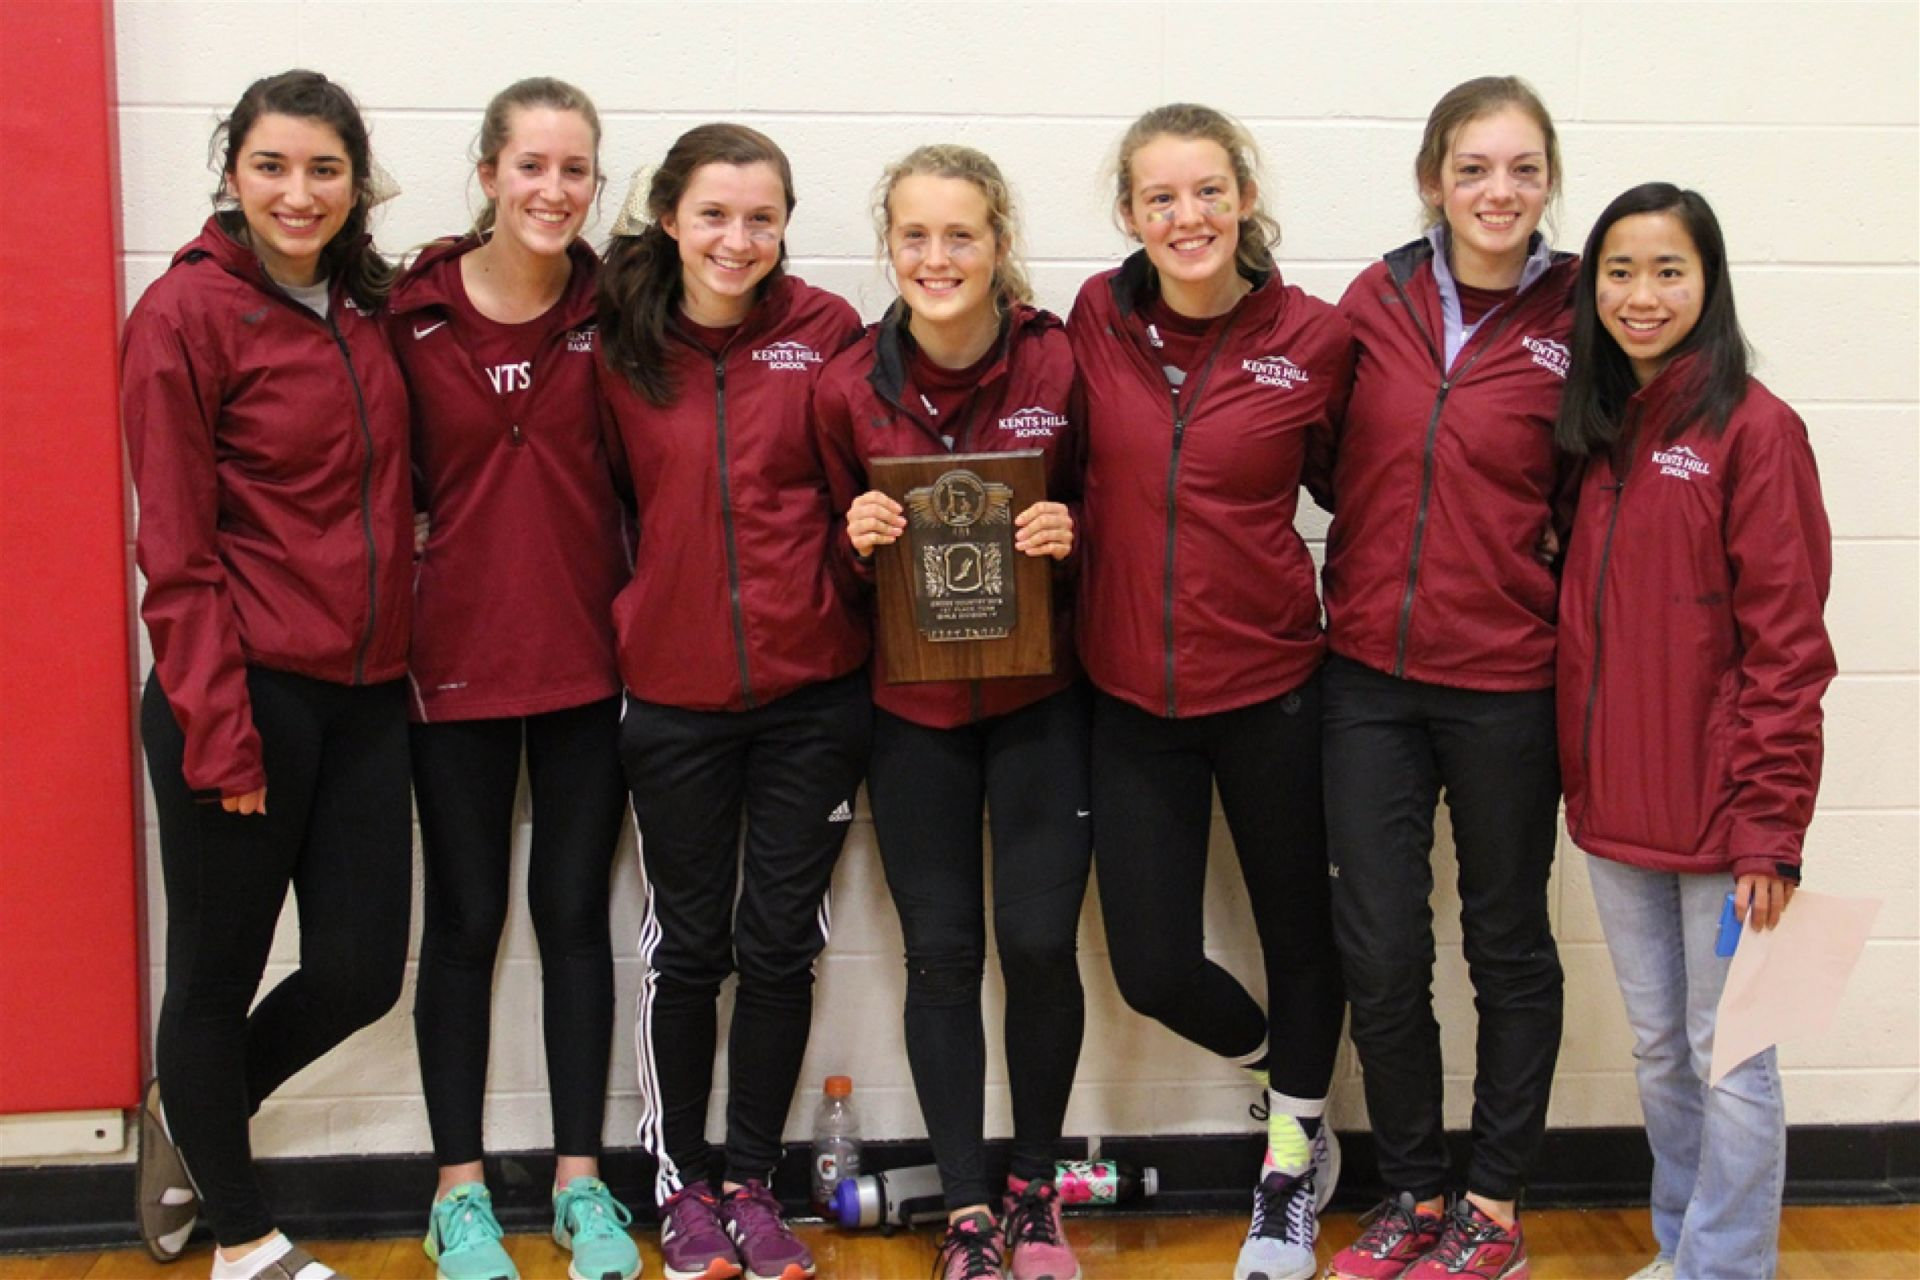 The 2015 Girls Varsity Cross Country team after winning their second consecutive title.